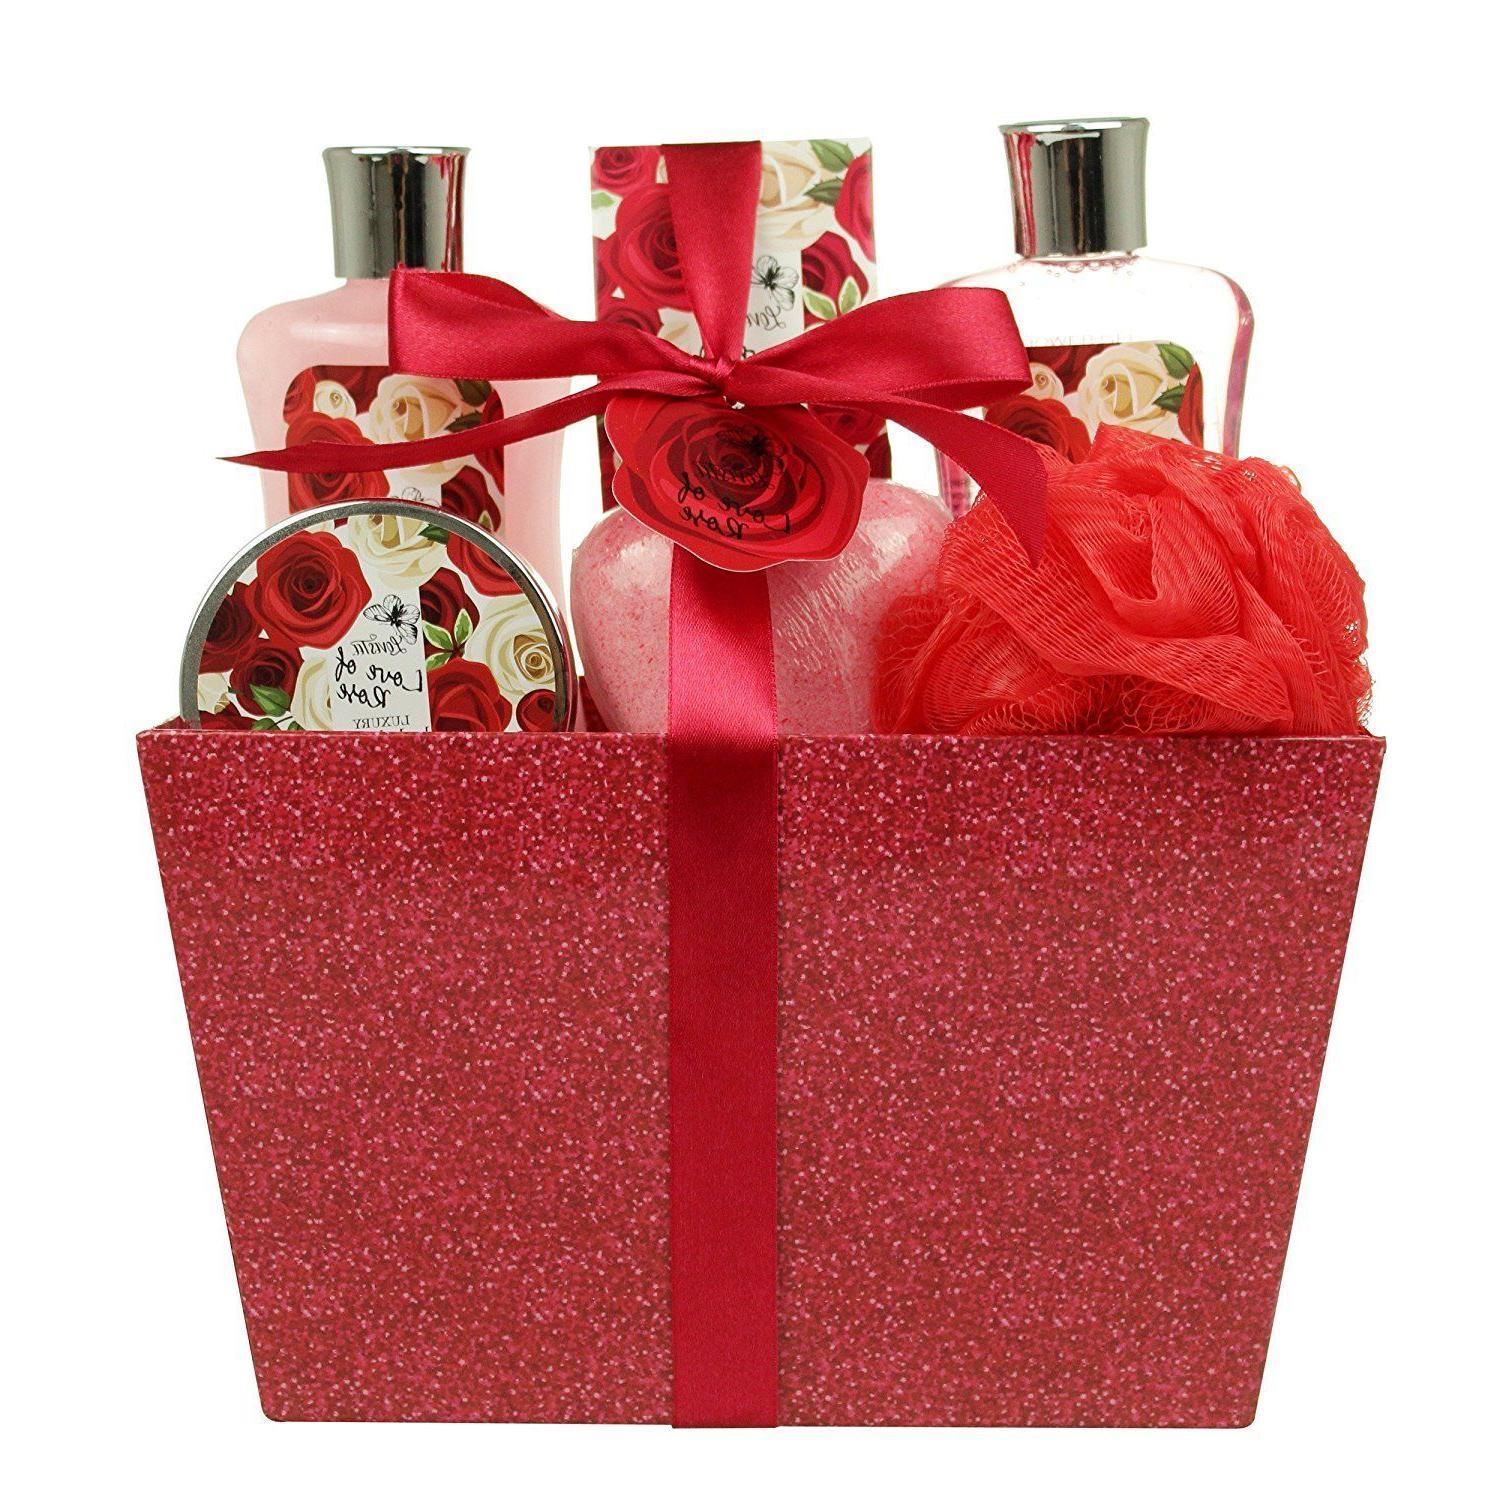 Birthday Valentines Gift for Her Spa Basket Bath & Body Love